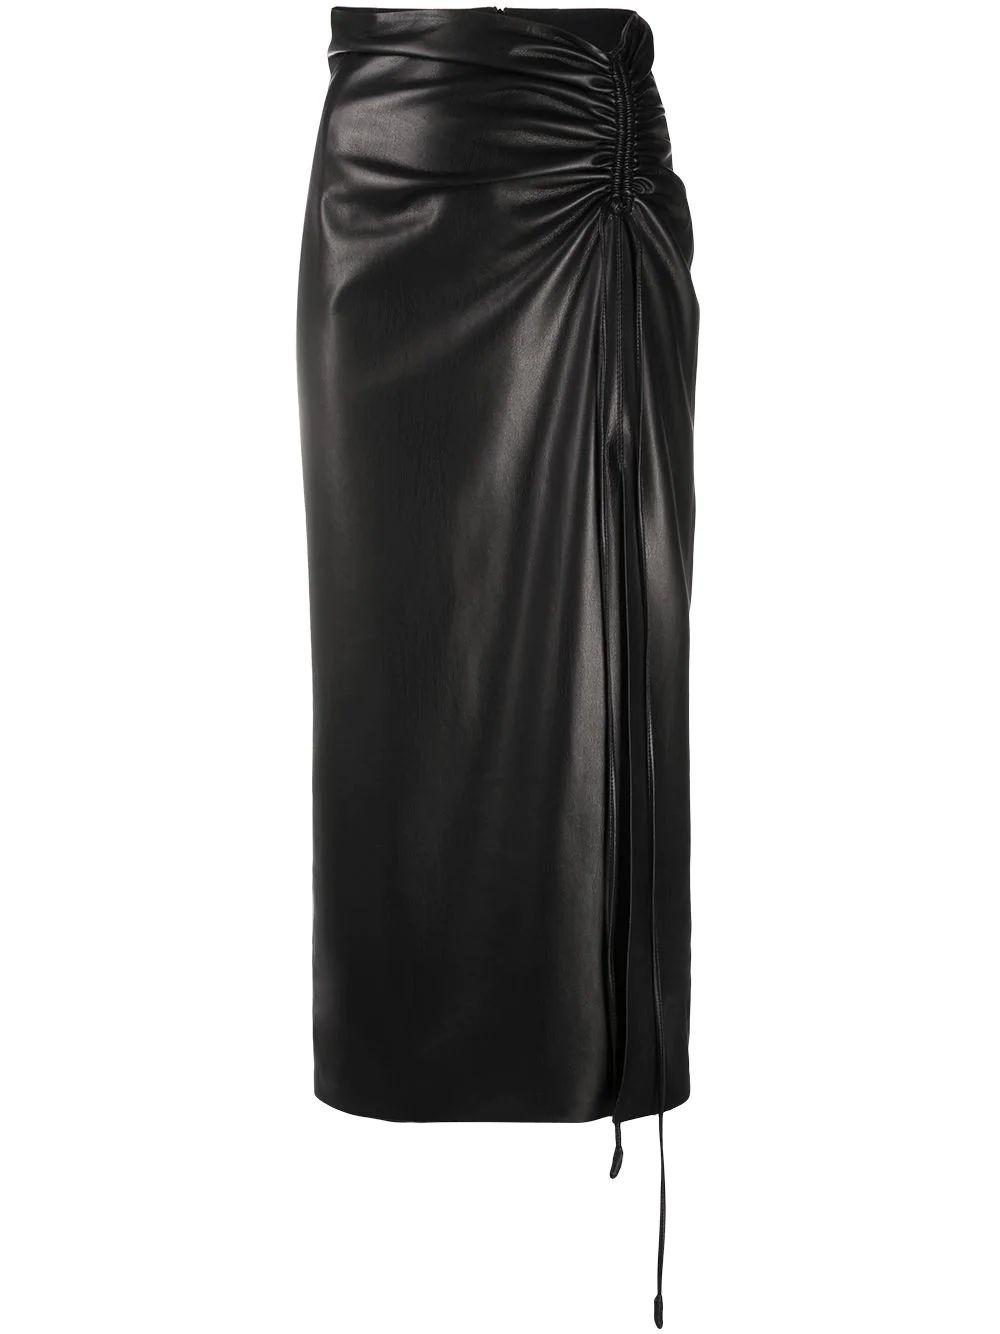 Malorie Faux Leather Midi Skirt Item # NW21SSSK01299